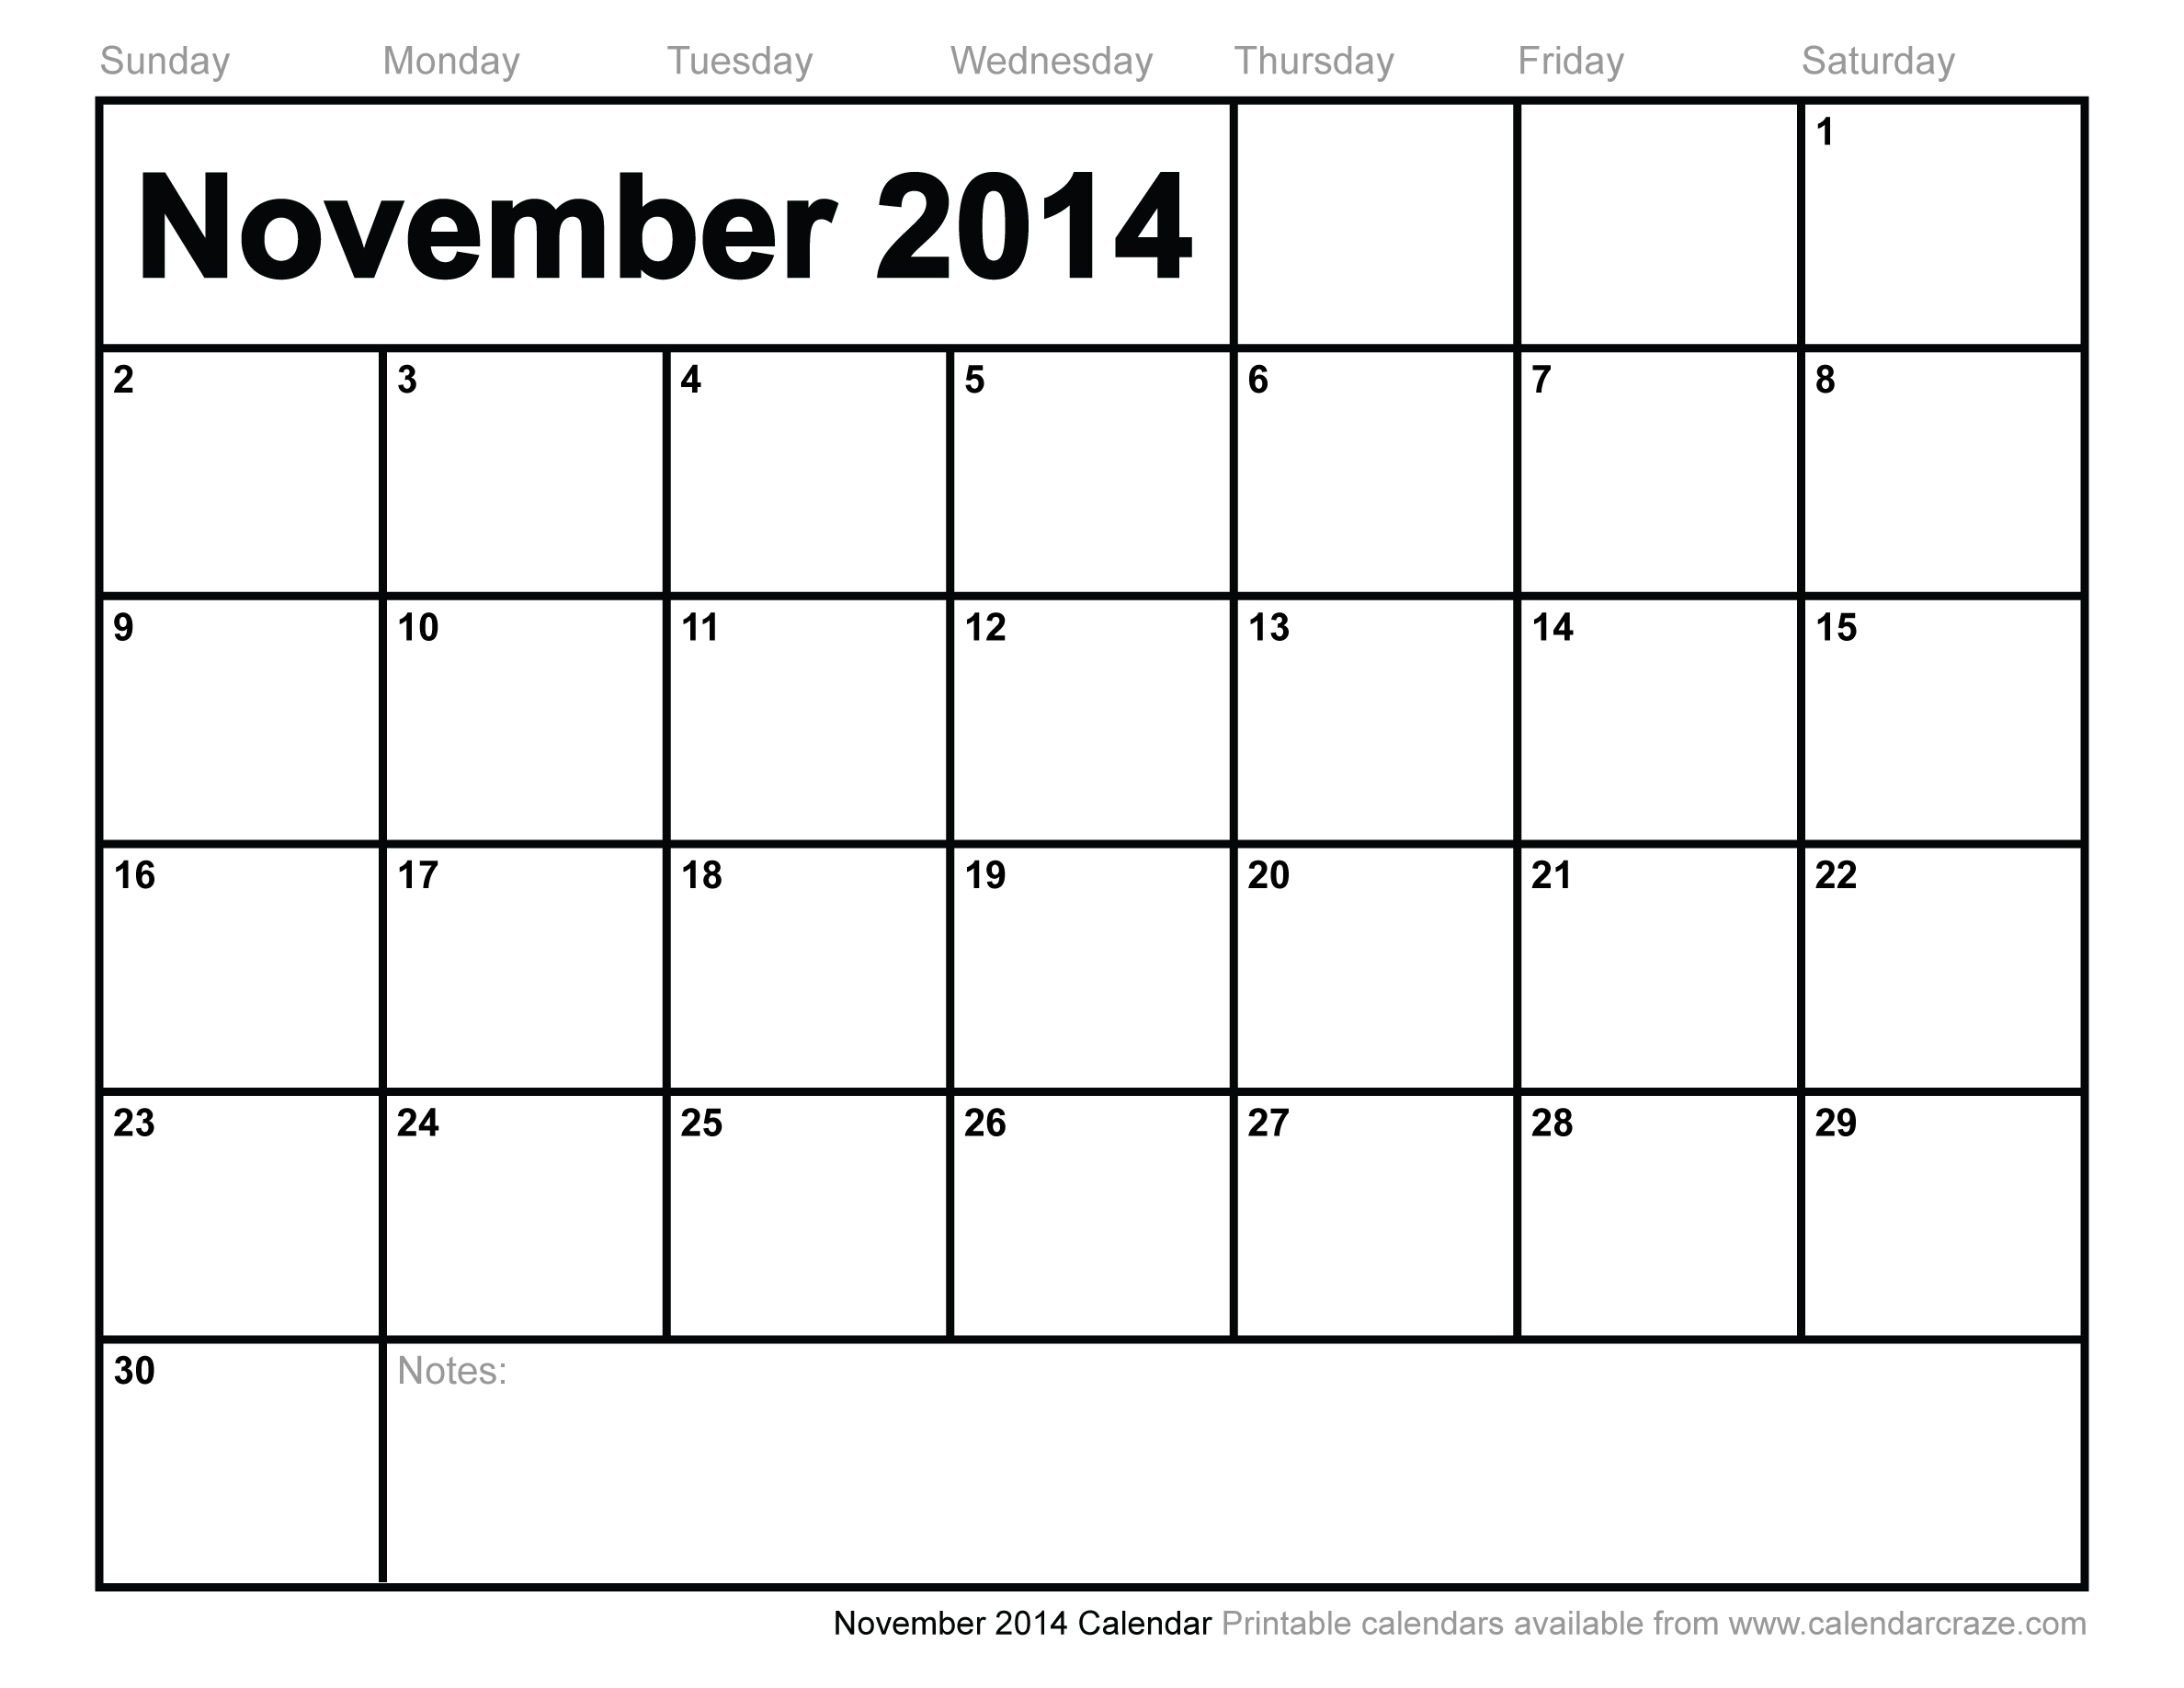 6 Images of Whimsical 2014 Calendar Printable November